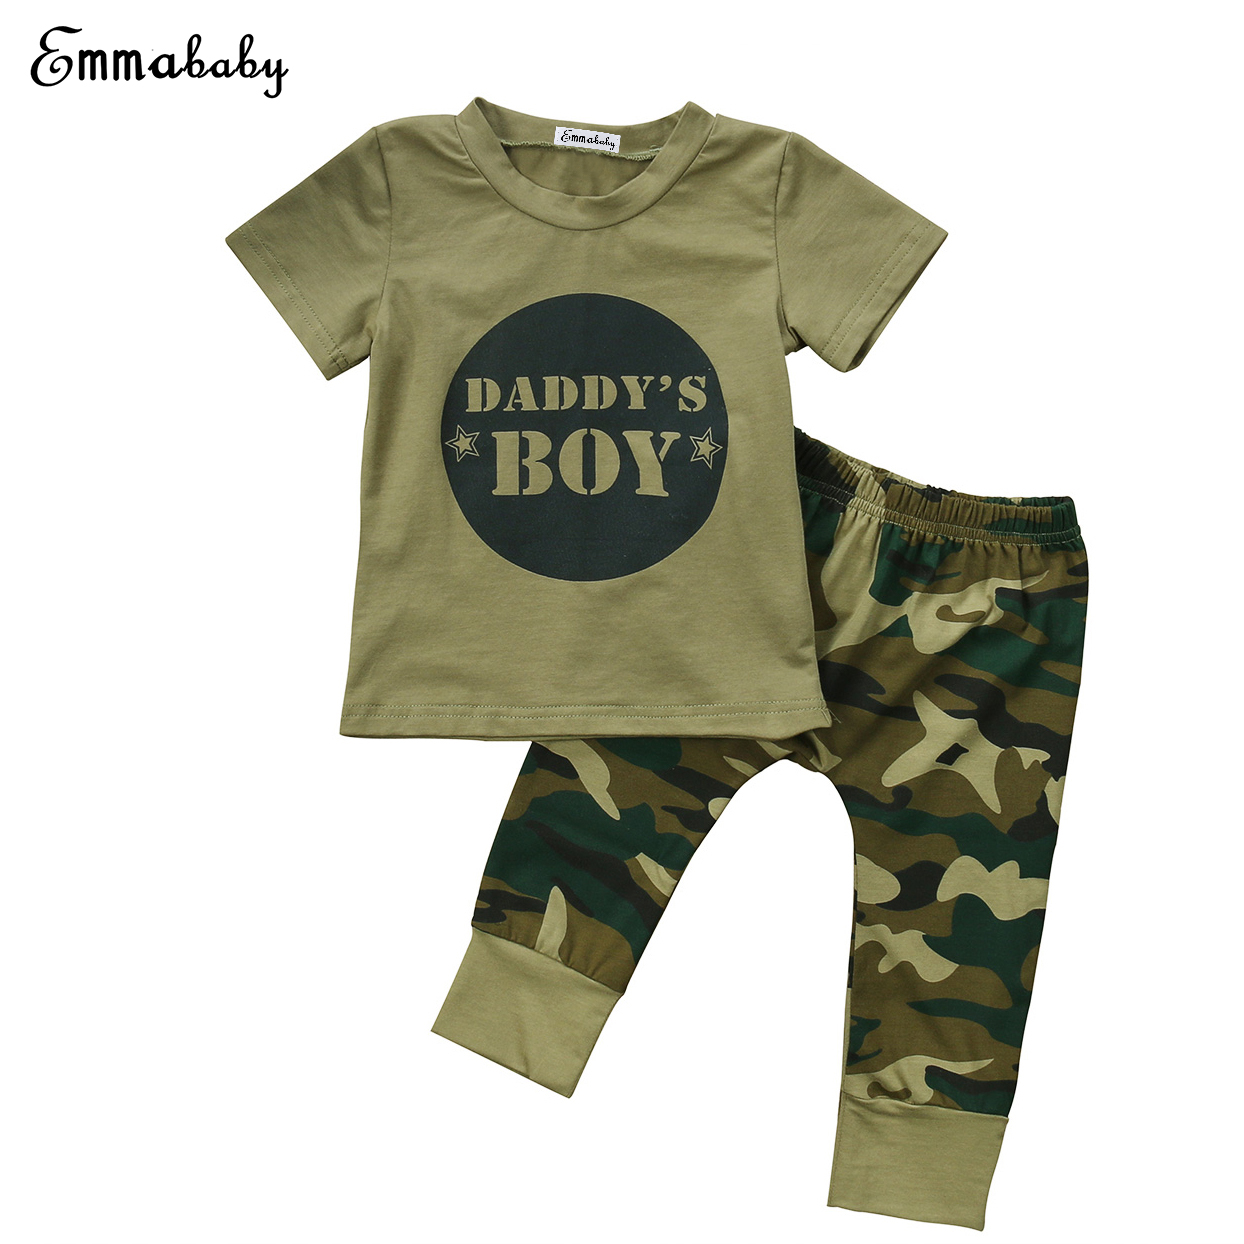 2pcs//set toddler kids baby camo army t-shirt tops pants boys clothes outfits BL